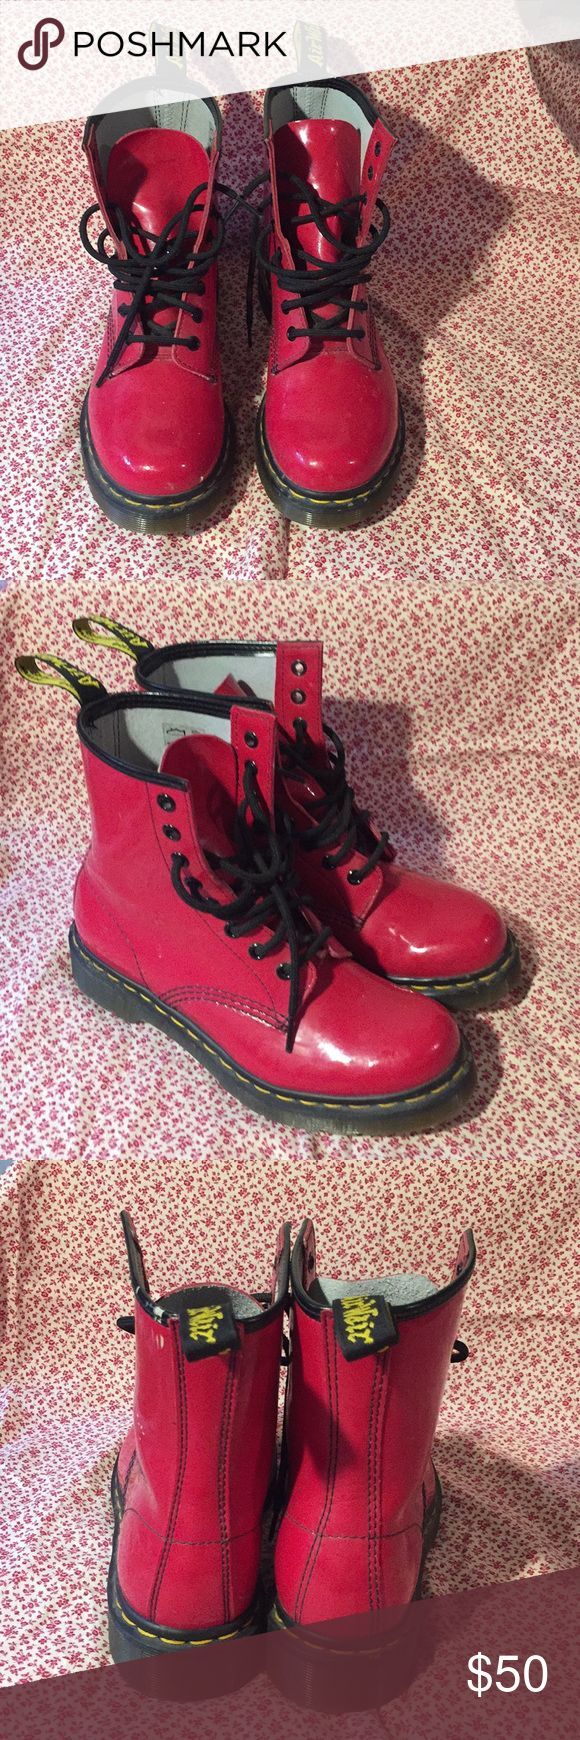 Shiny red Dr Marten boots Only worn twice, slight scuffs from sitting in my closet. Dr. Martens Shoes Lace Up Boots